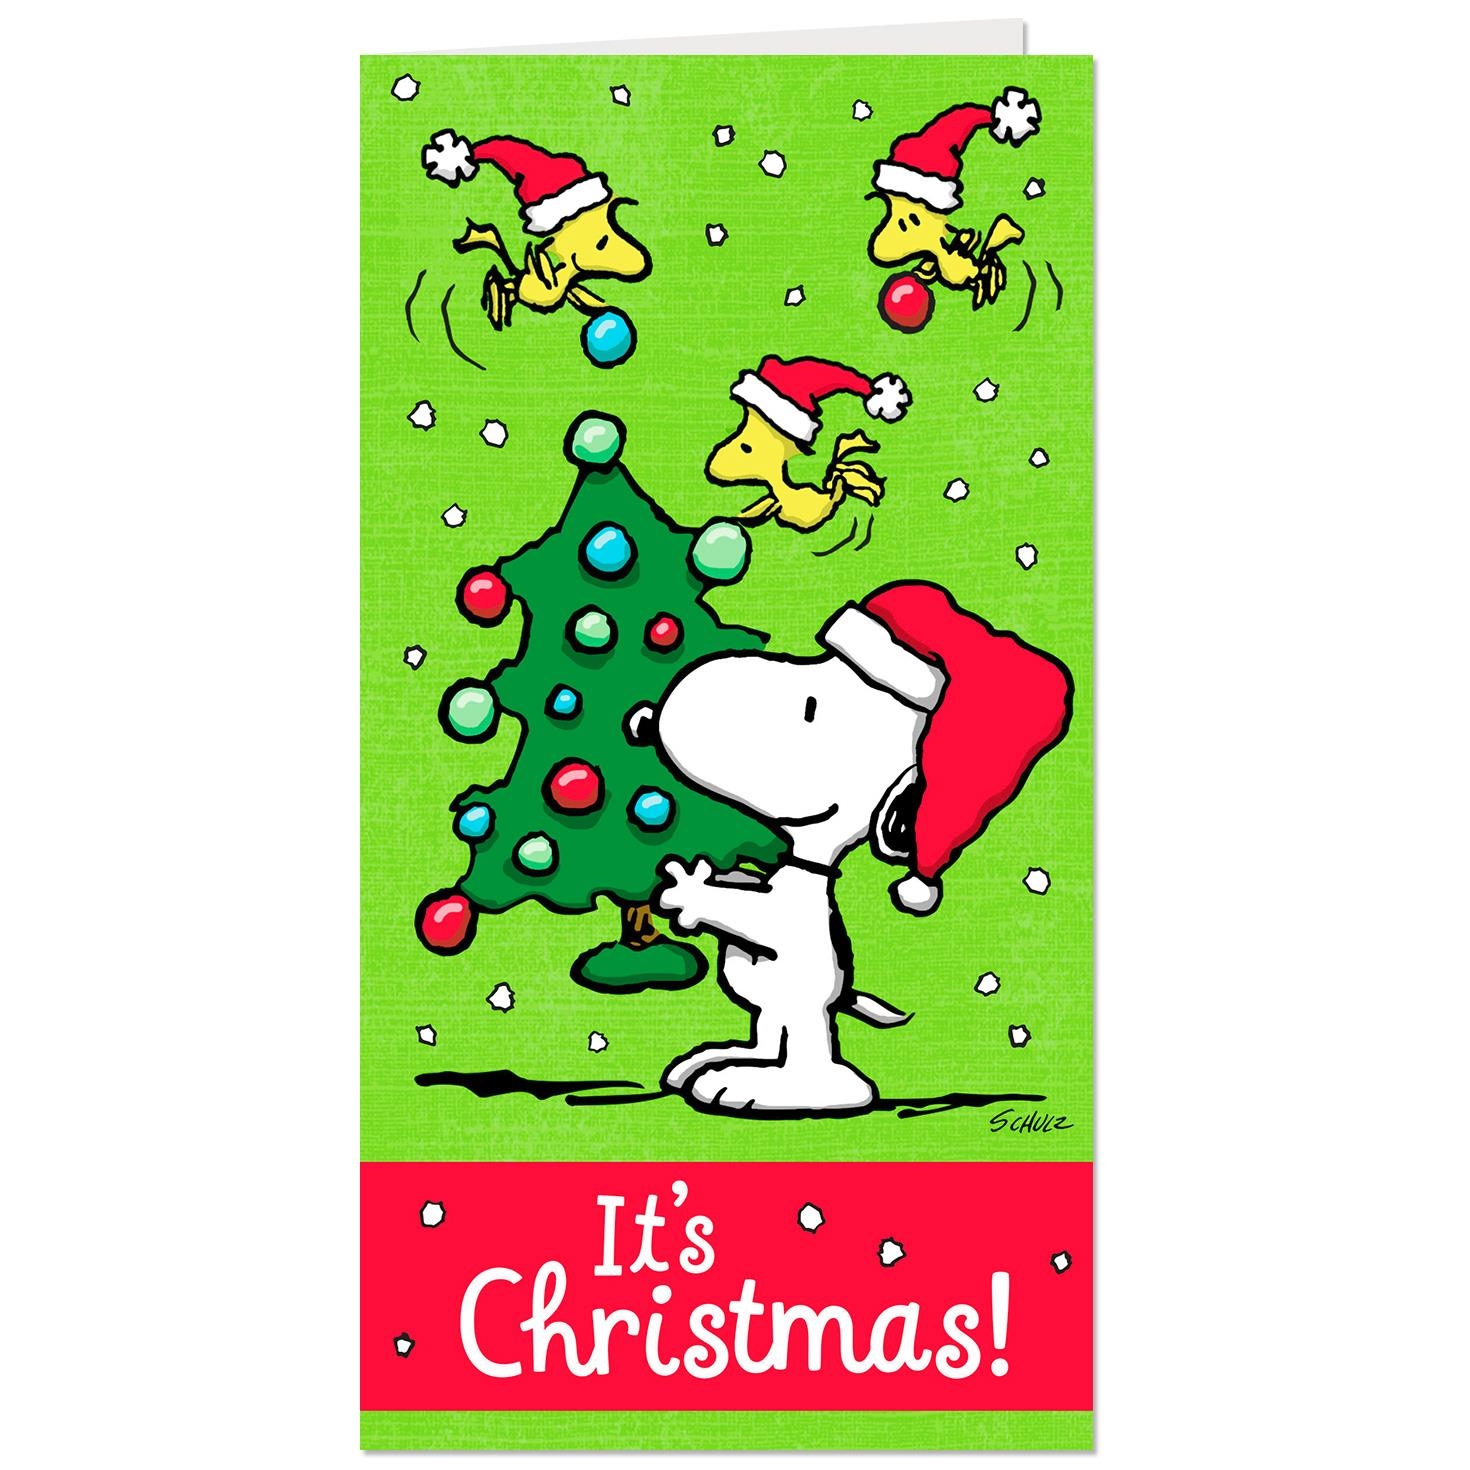 peanuts money holder christmas cards pack of 10 - Photo Holder Christmas Cards